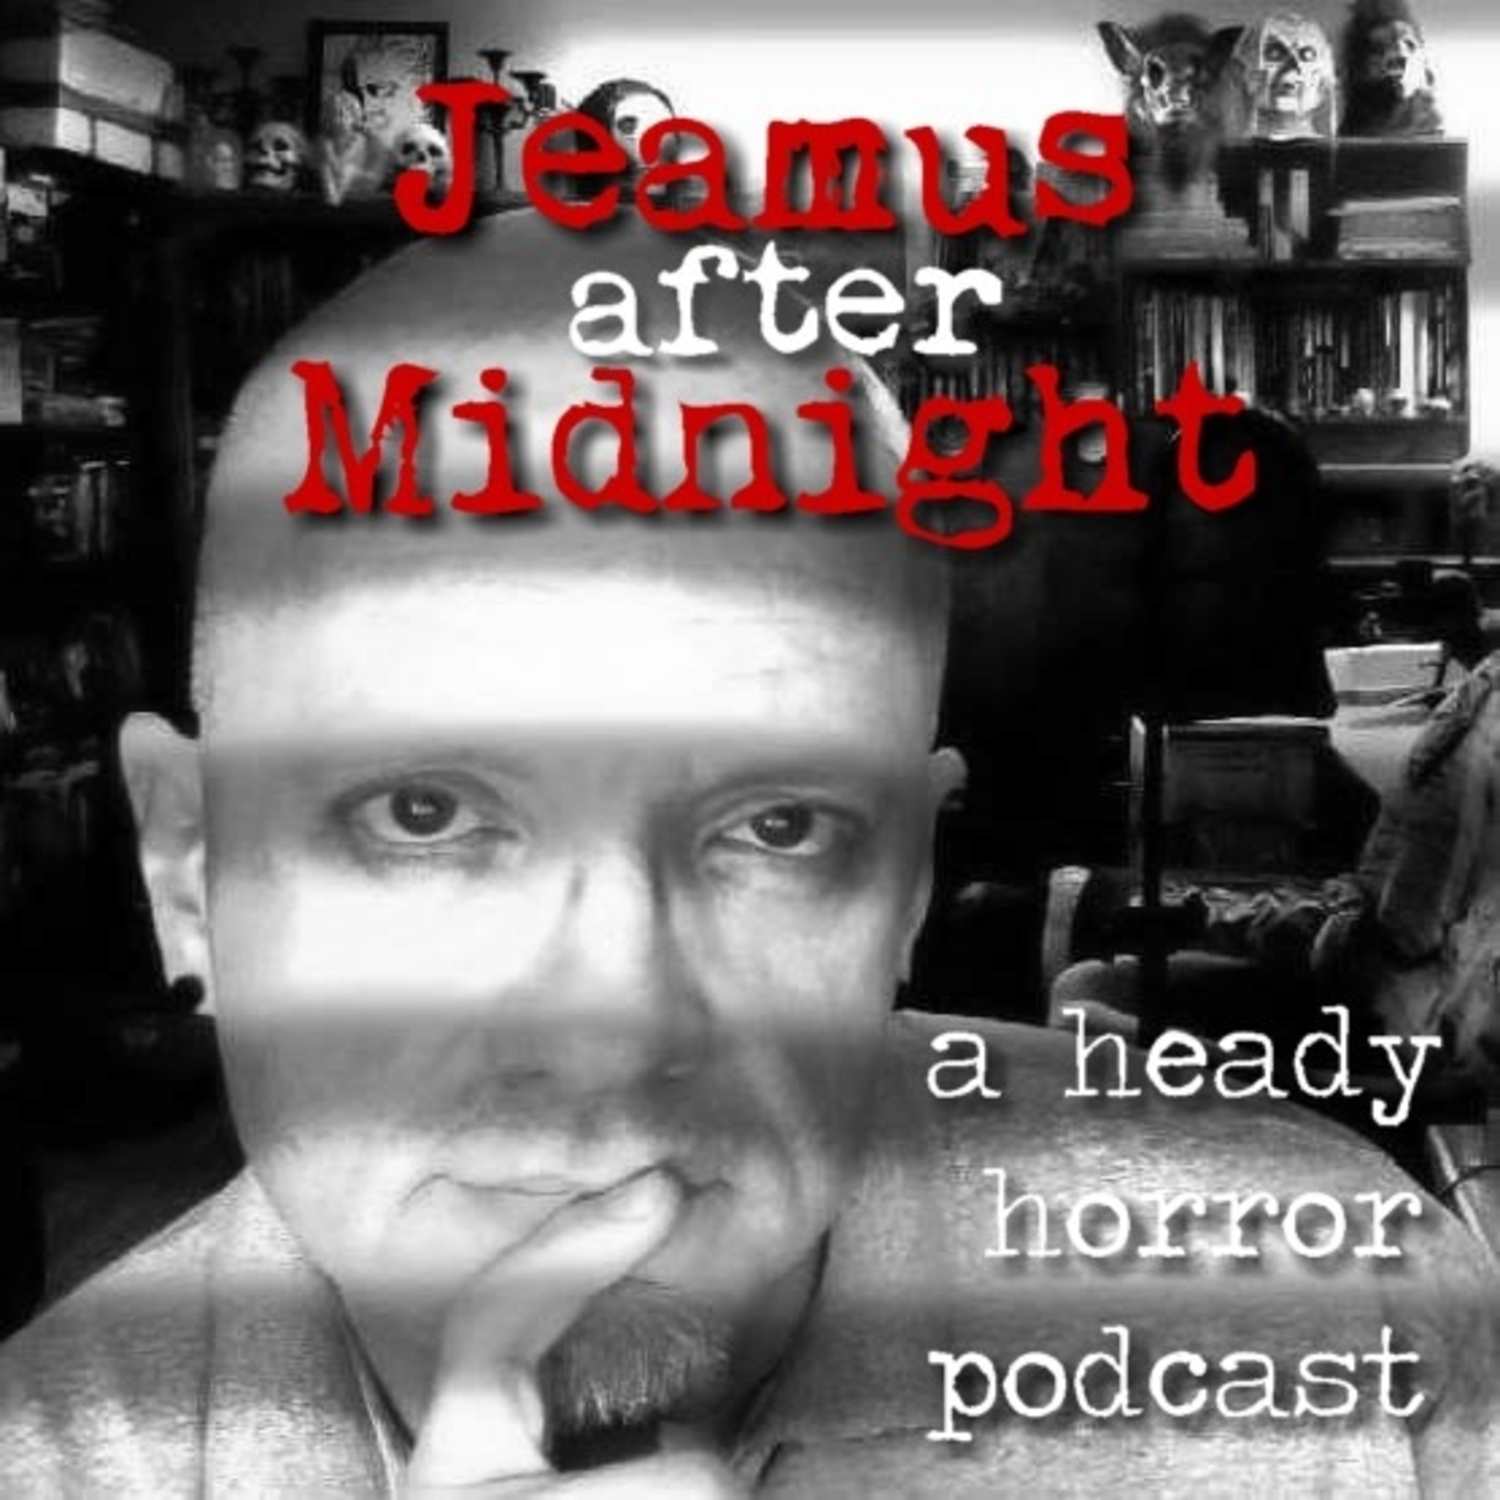 Jeamus After Midnight